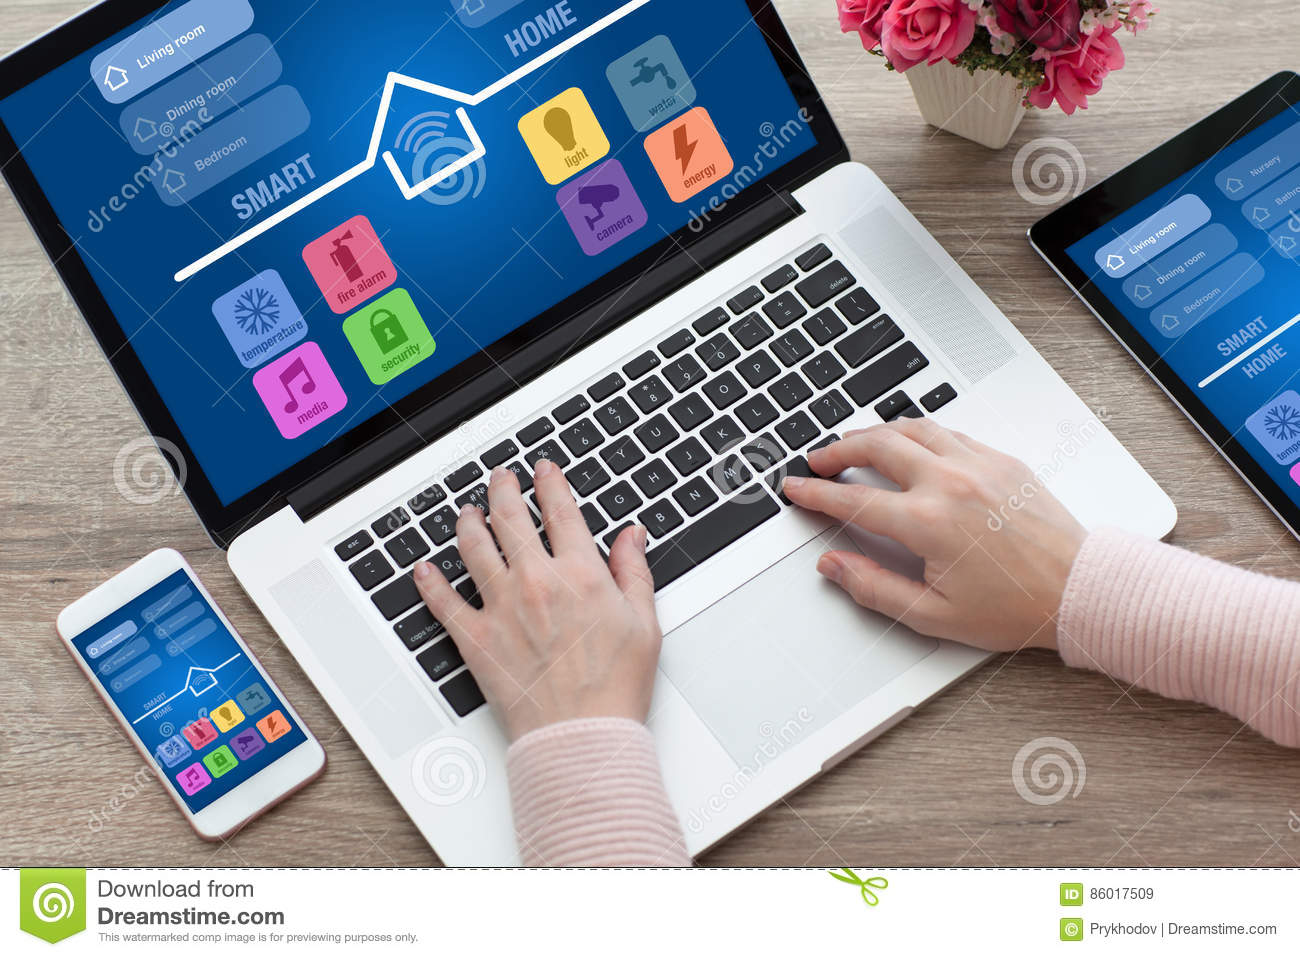 Woman hands notebook computer tablet phone app smart home